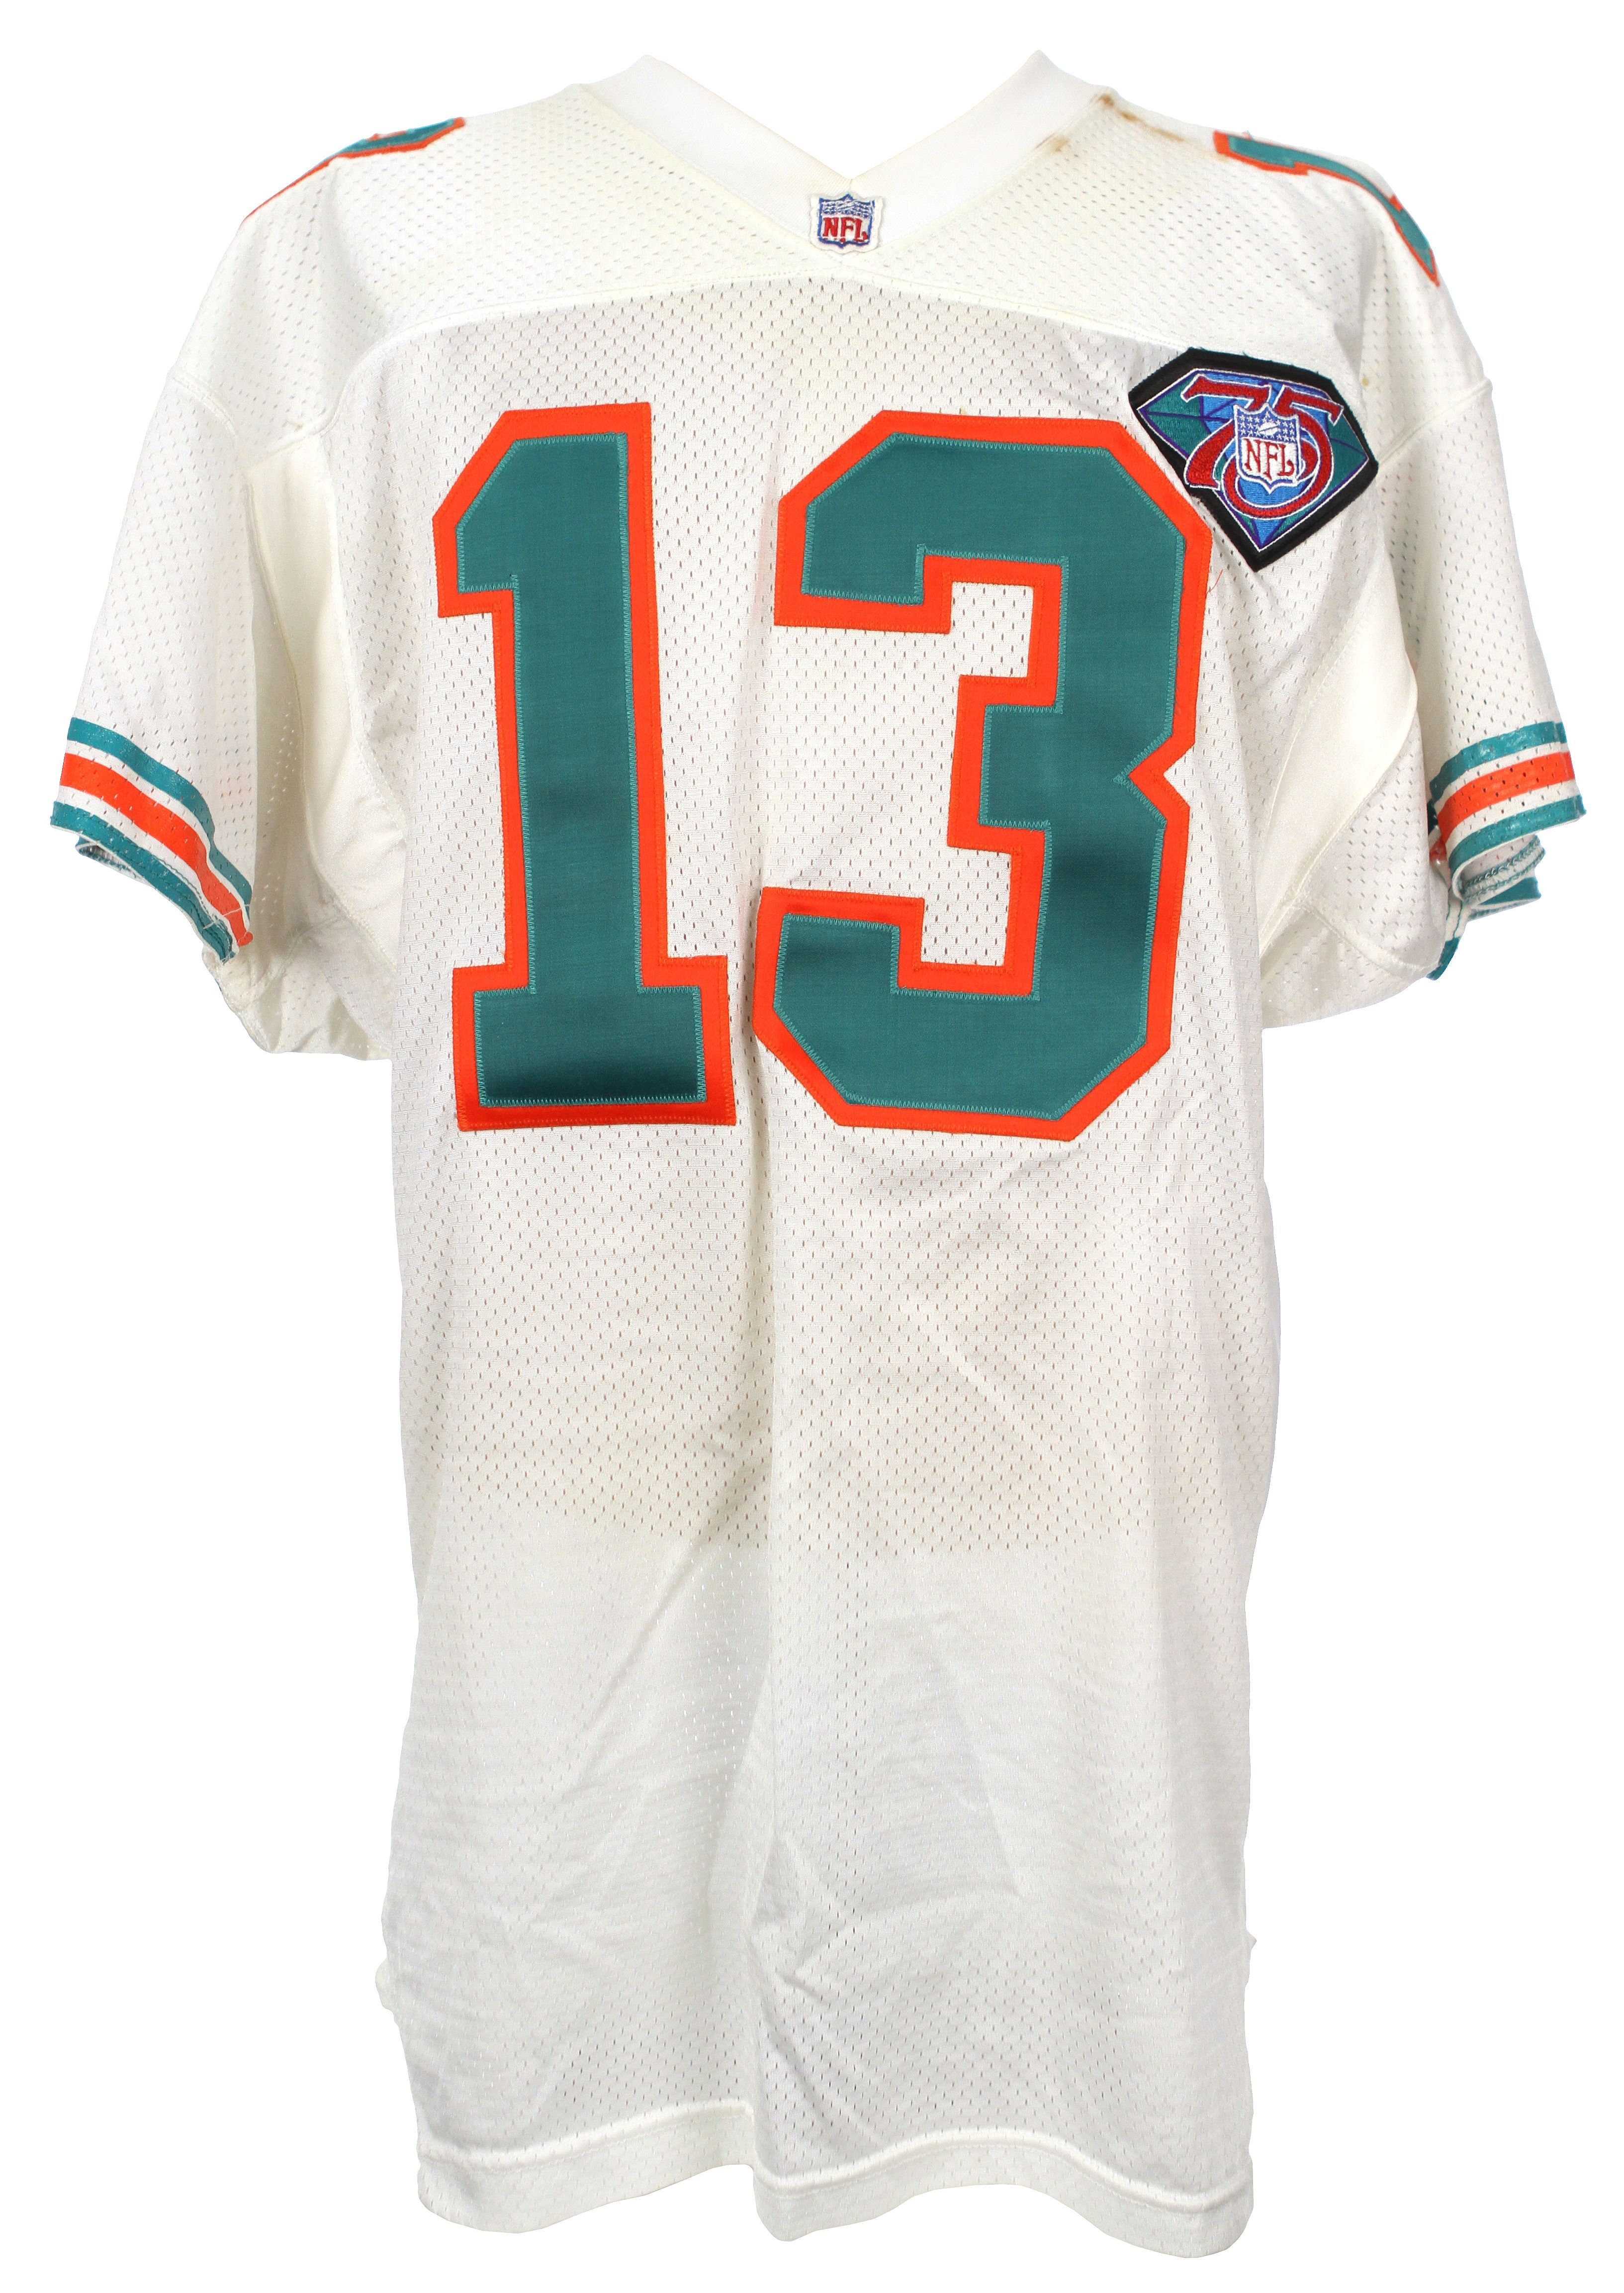 a667e1d3f3f8 Lot Detail - 1994 (October 16) Dan Marino Miami Dolphins Game Worn Home  Jersey - Worn October 16th